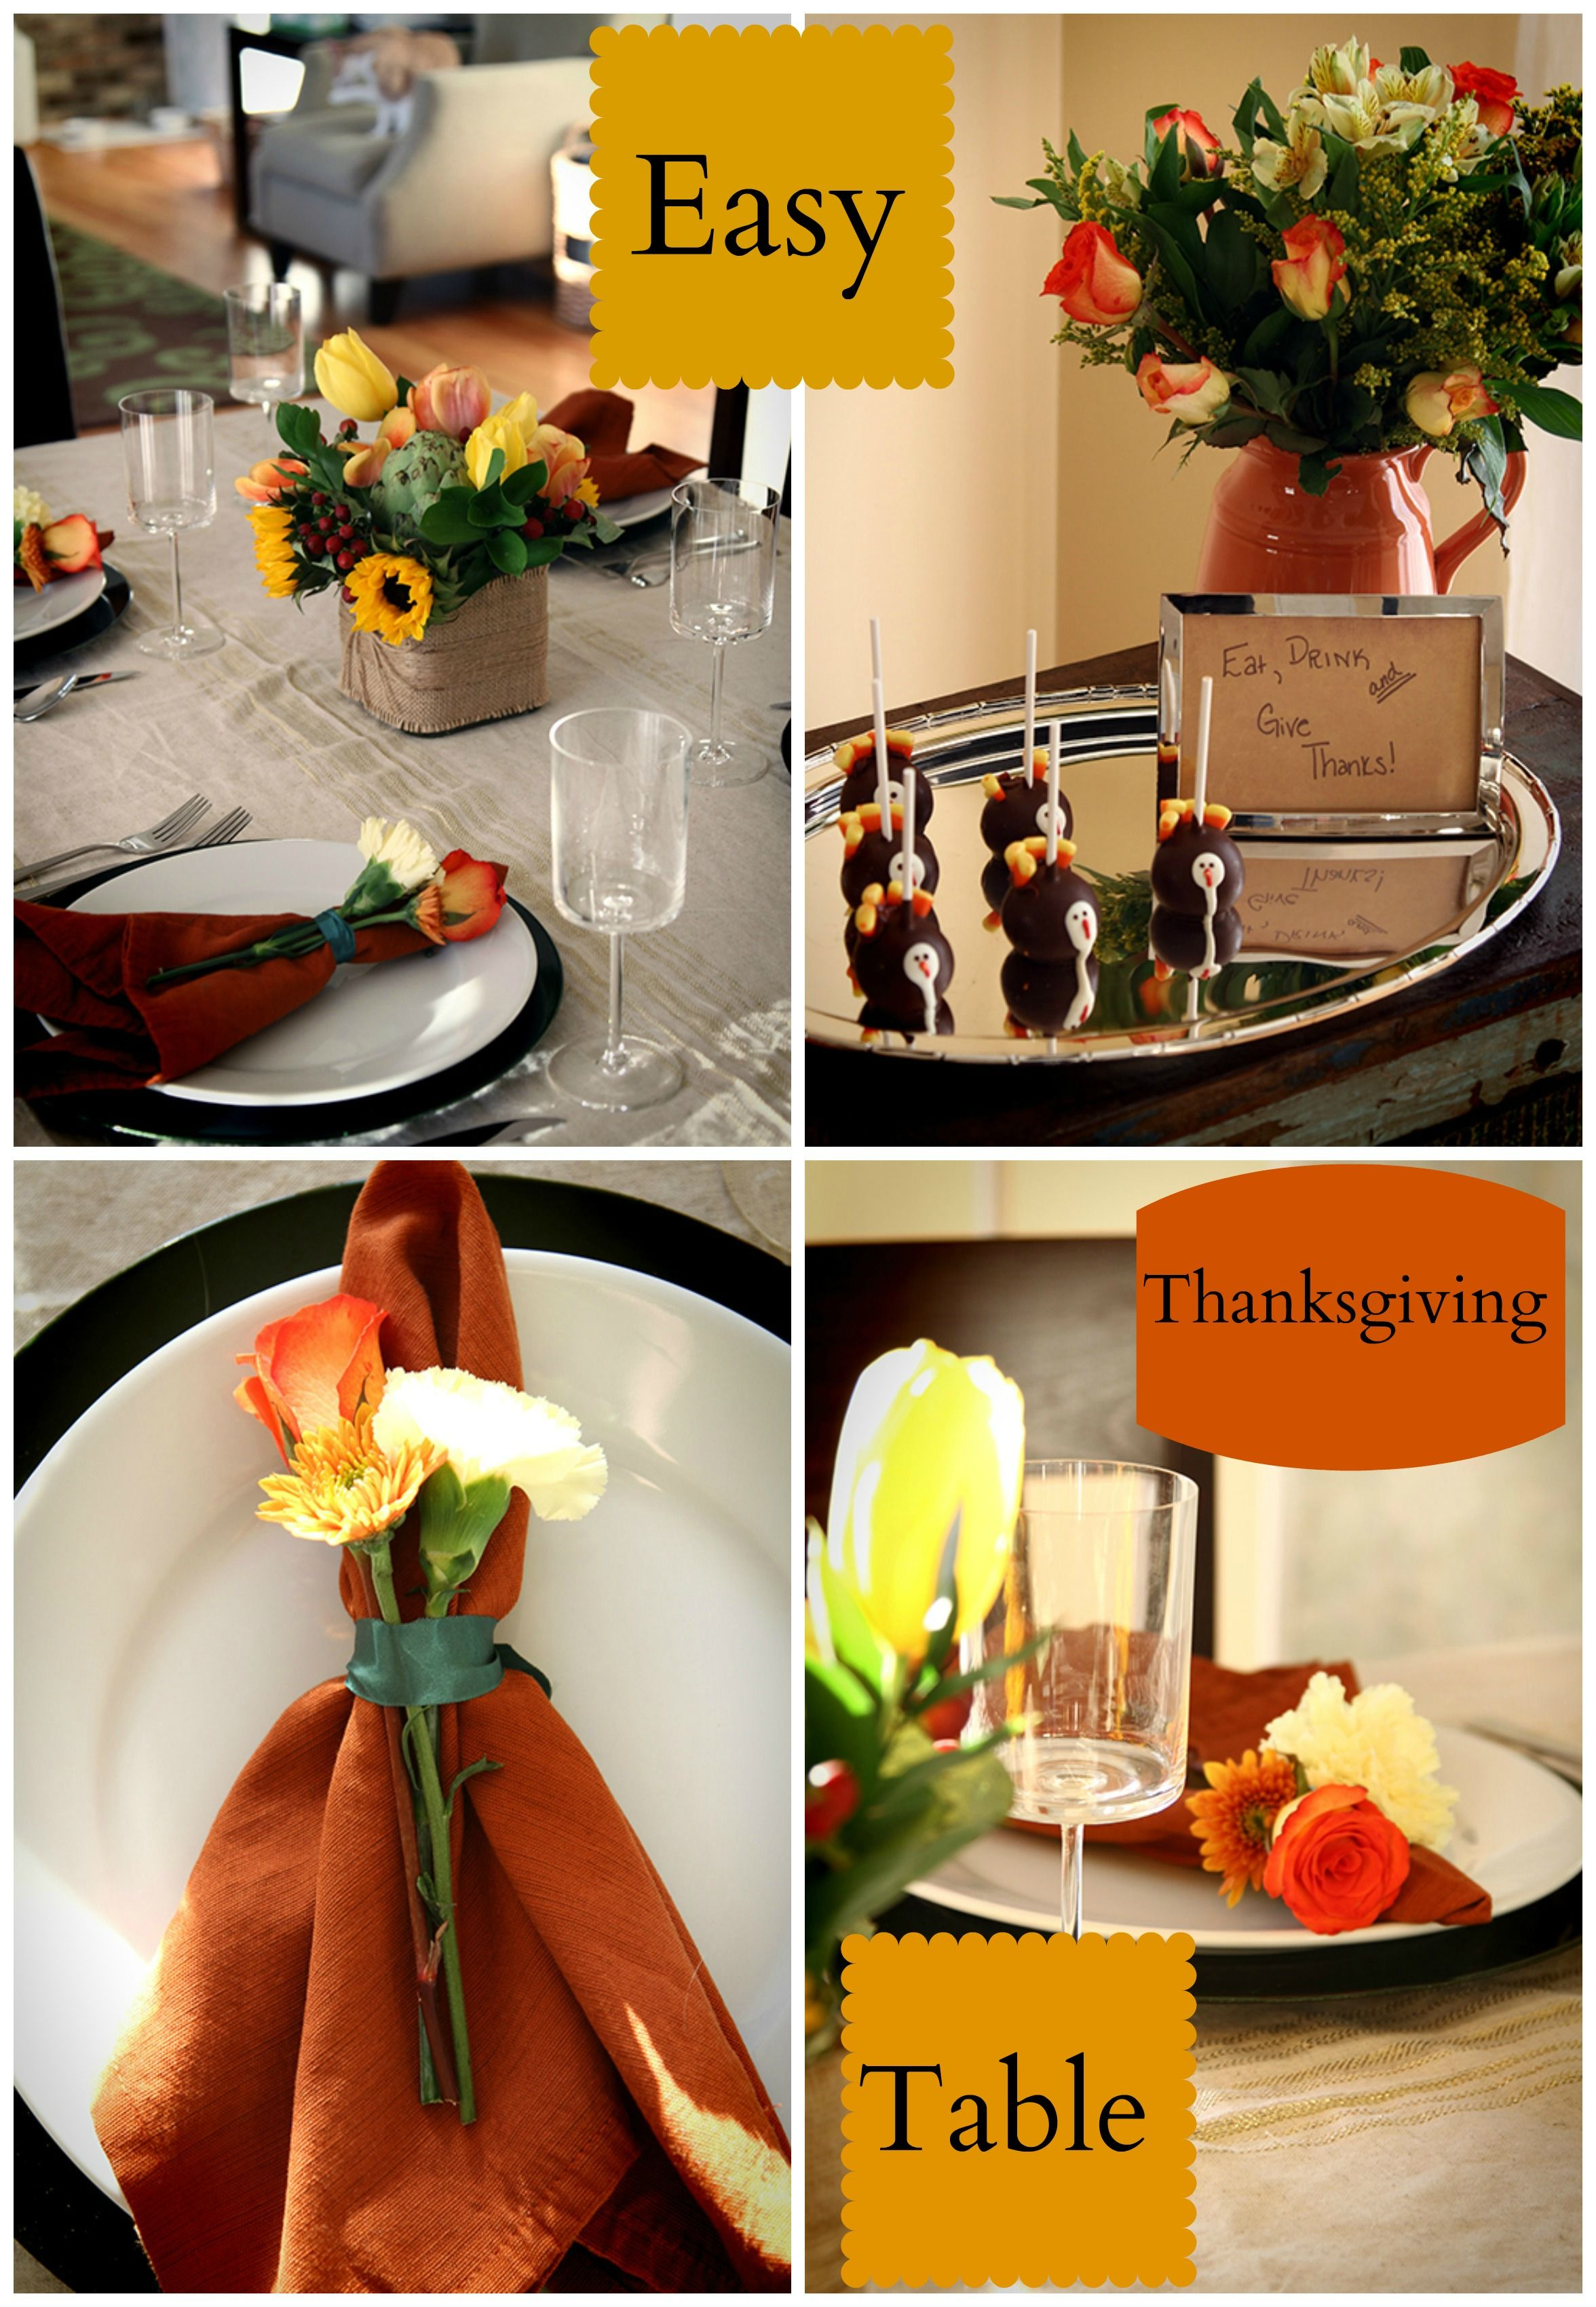 Easy Chic Thanksgiving Tablescape  Take Time For Style